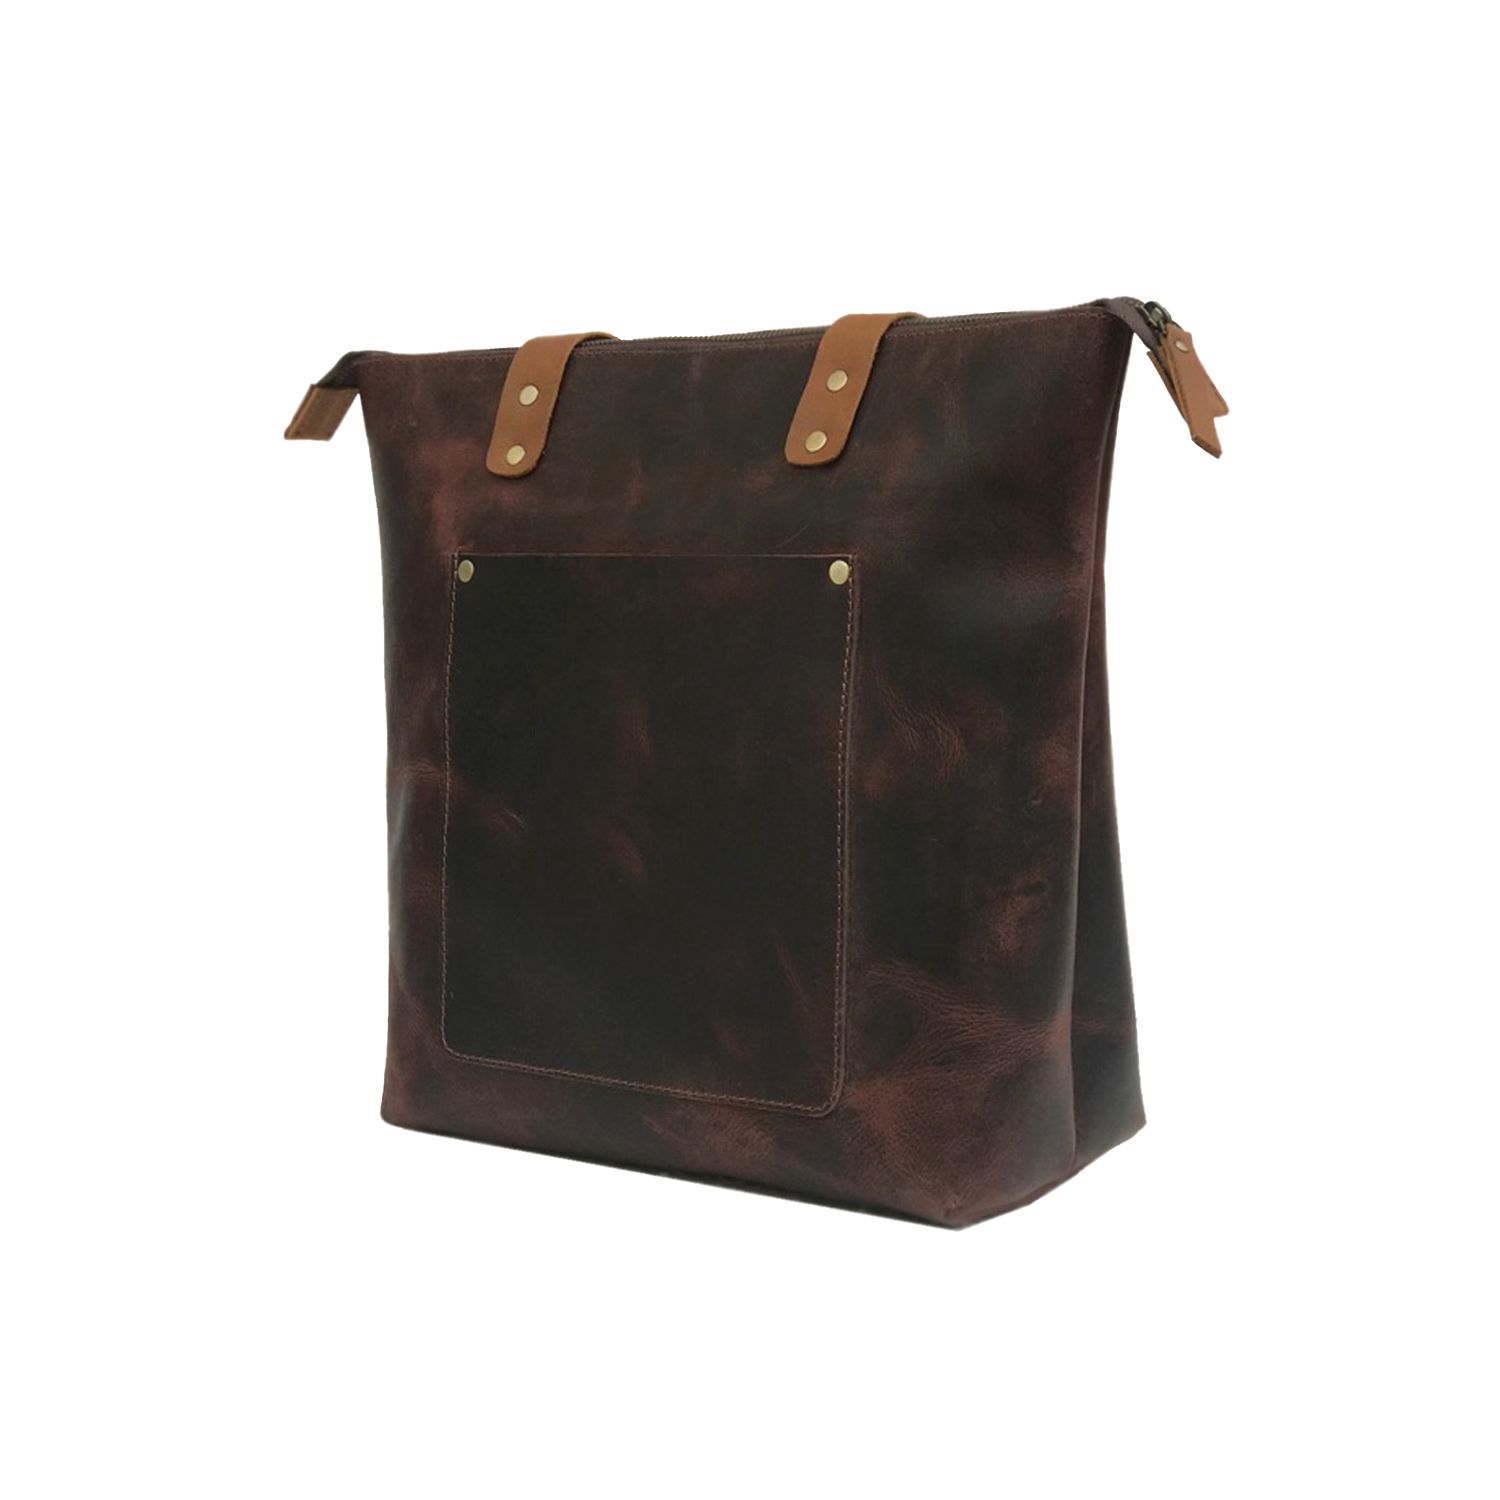 Zakara Leather Handbag